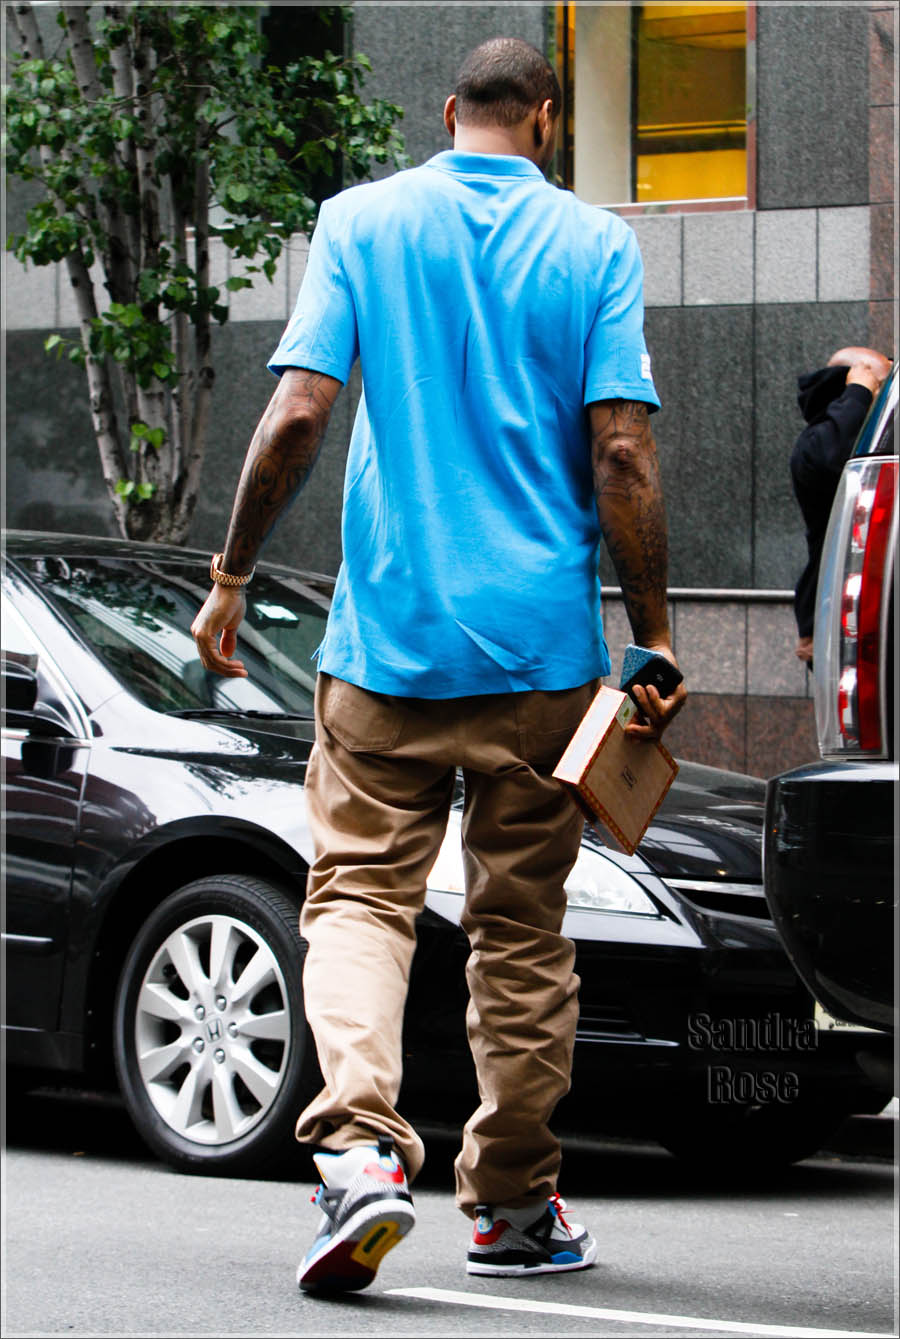 carmelo-anthony-cigars-air-jordan-spizike-bordeaux